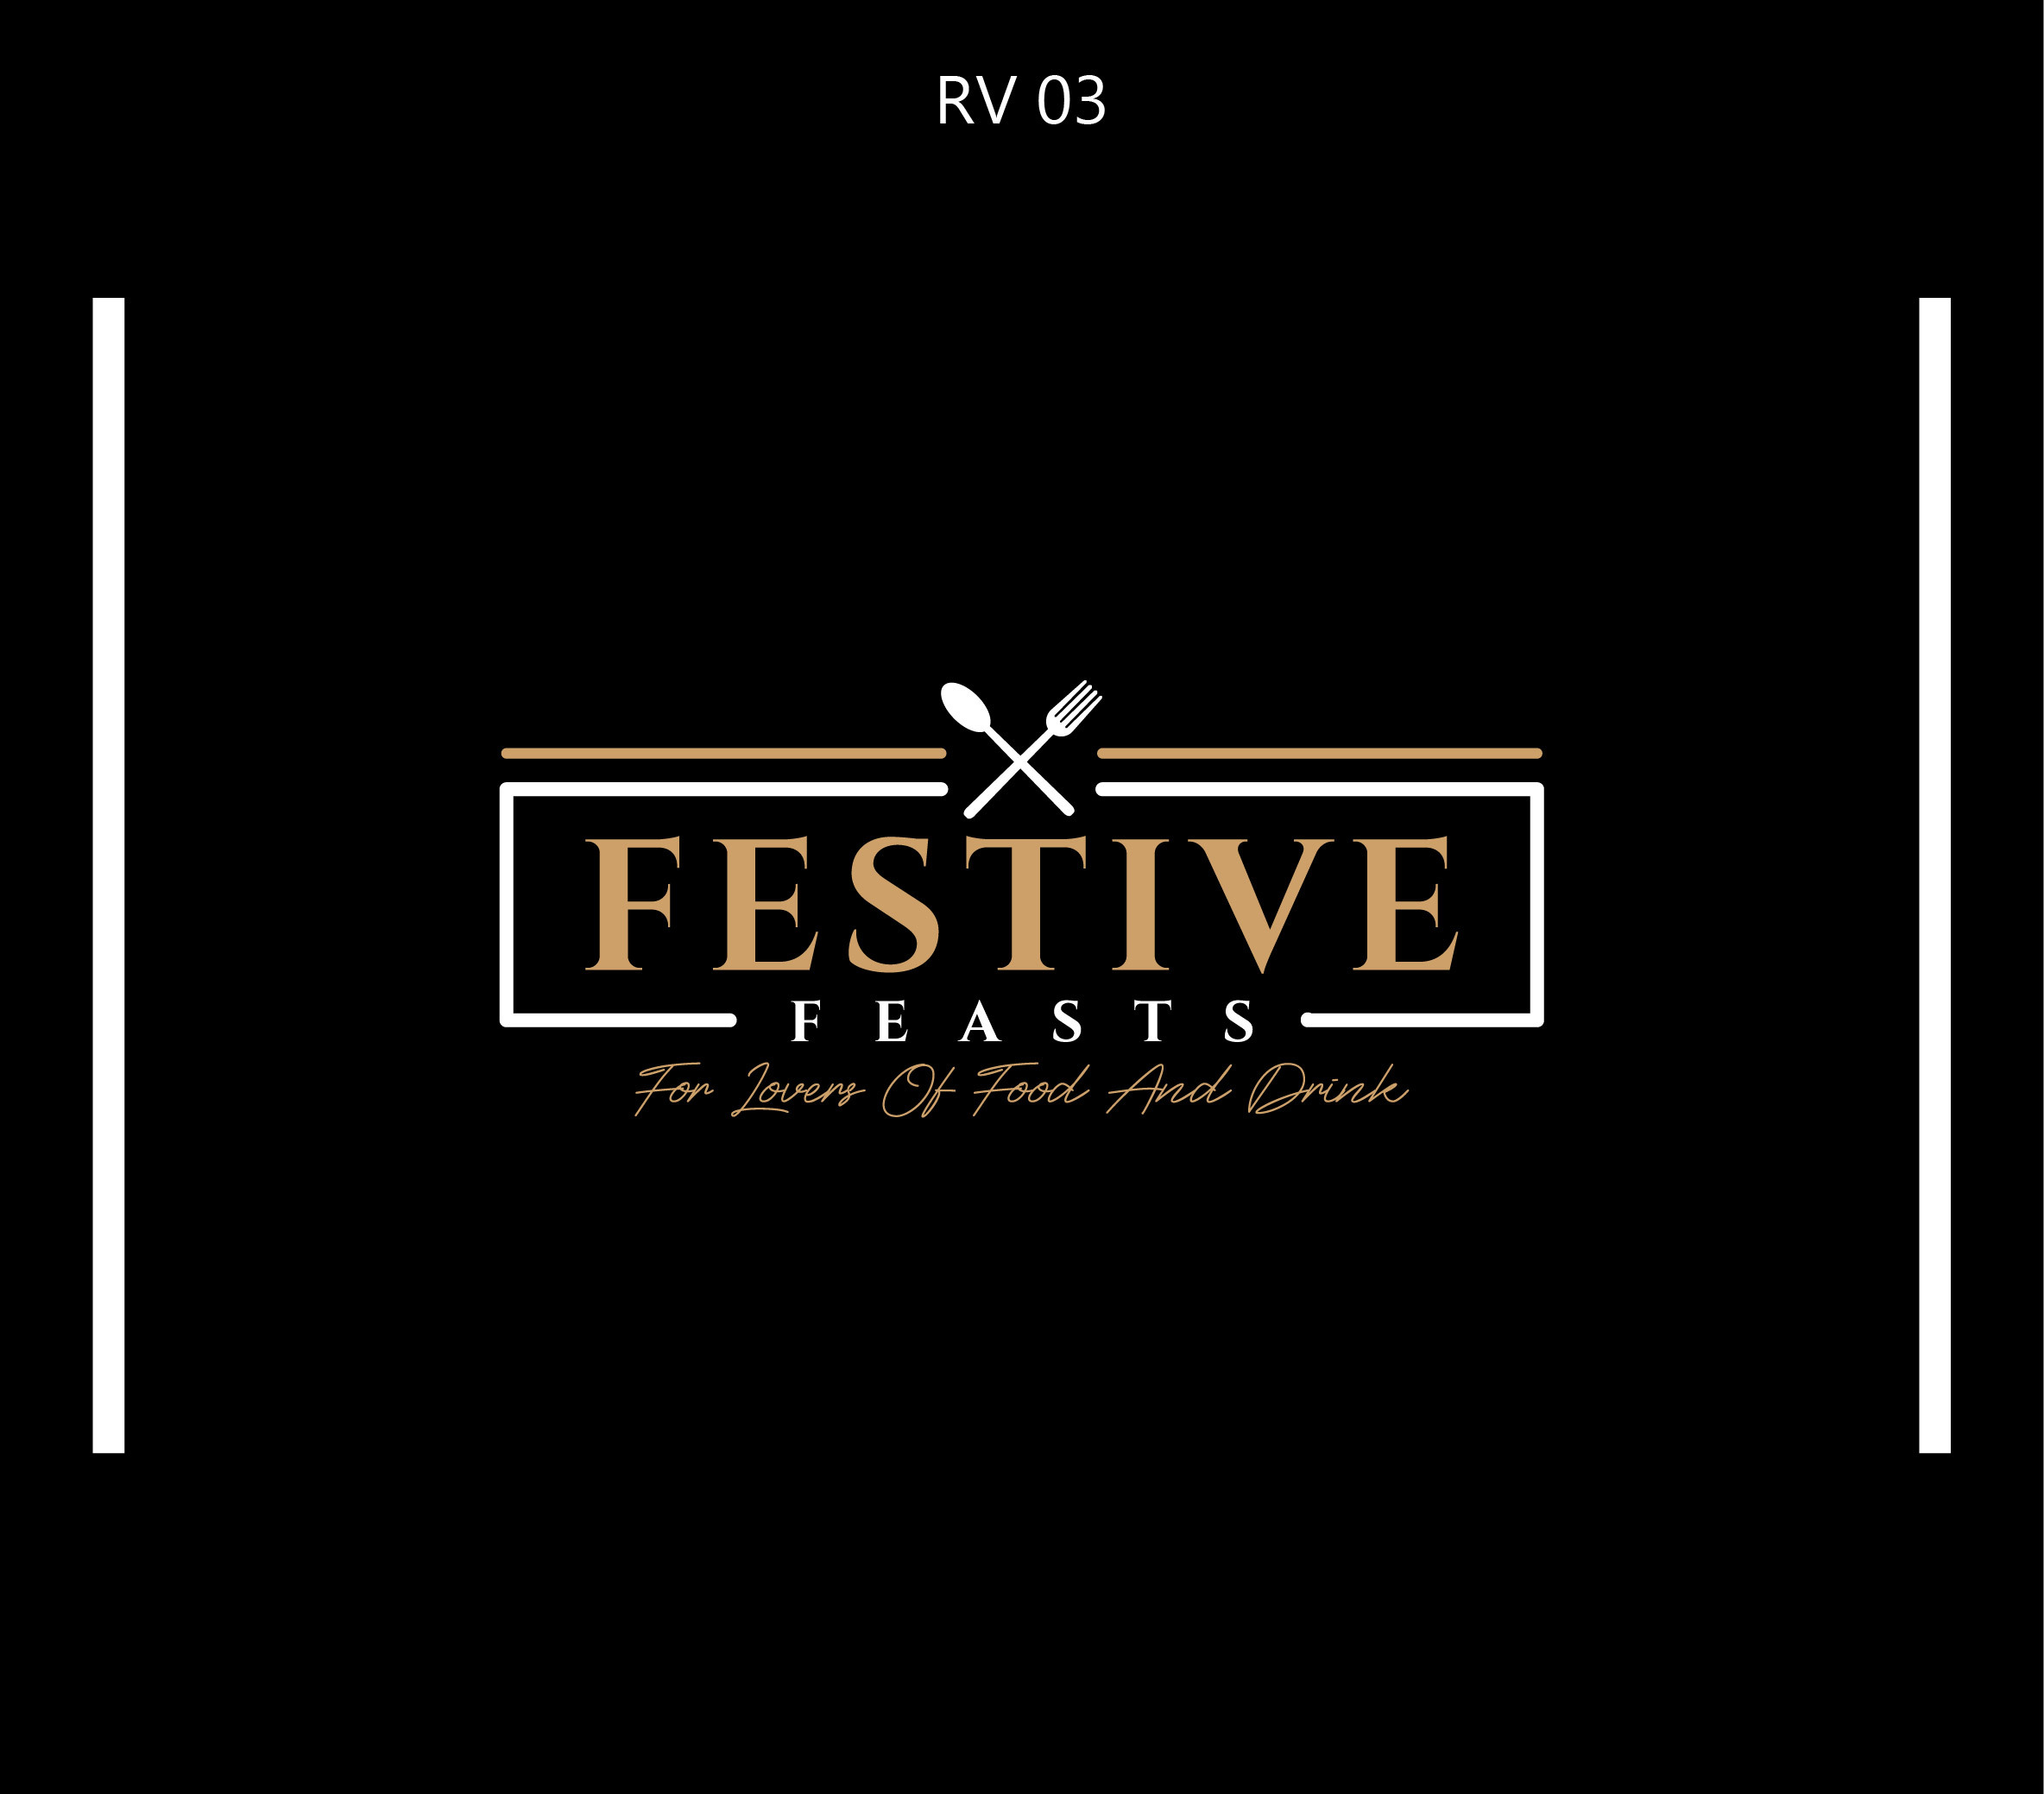 FESTIVE FEASTS LIMITED